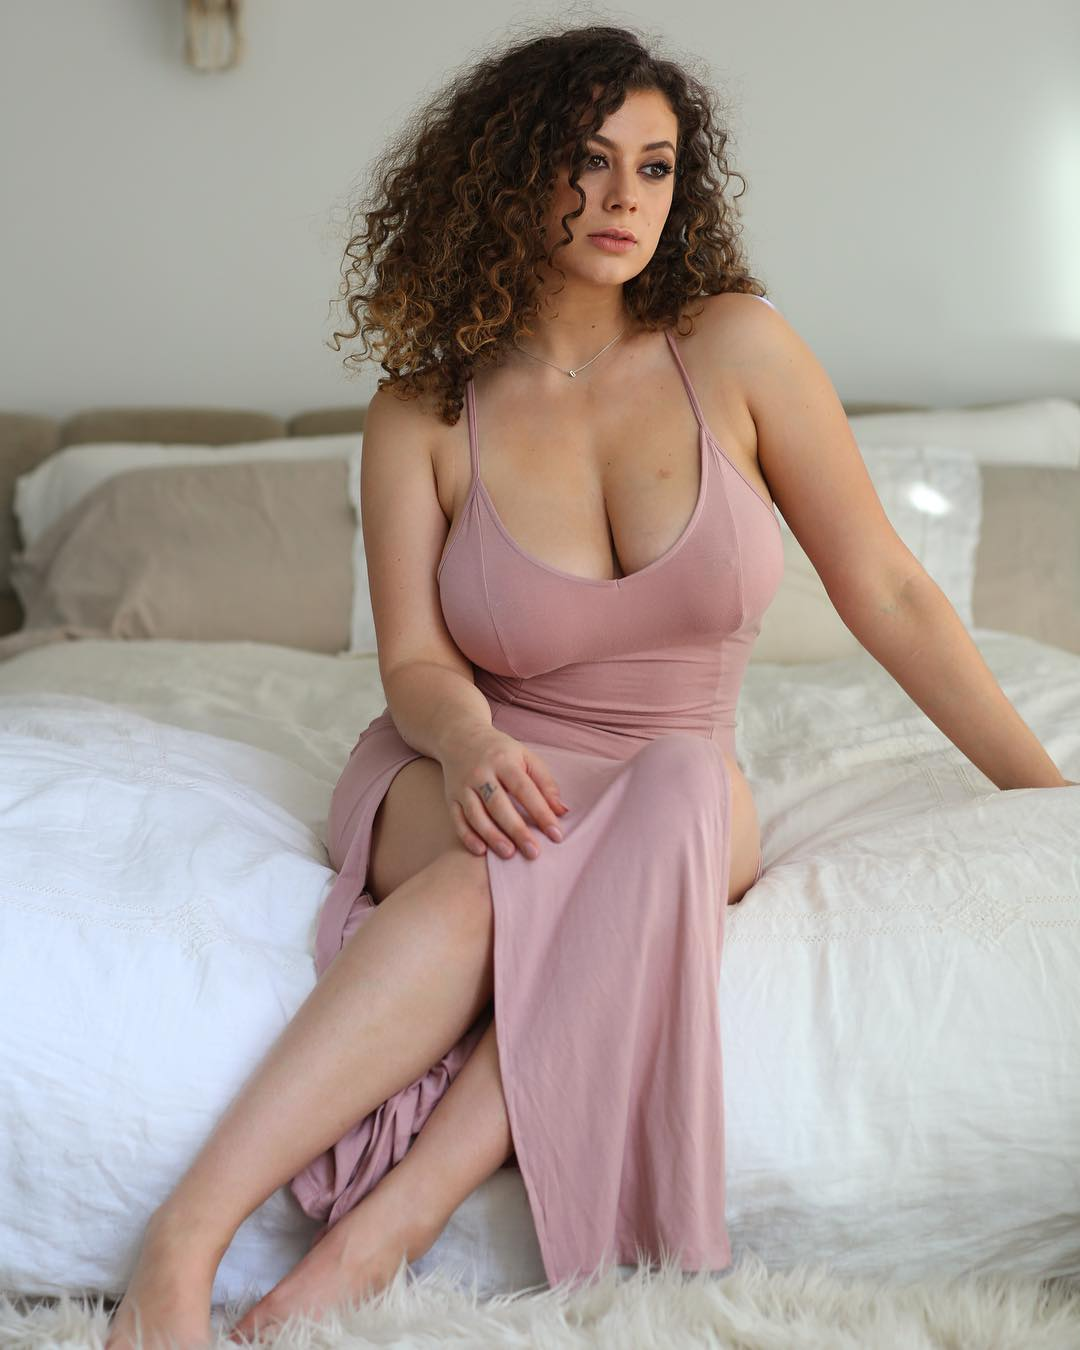 Leila Lowfire nudes (86 pictures), young Porno, Instagram, butt 2016